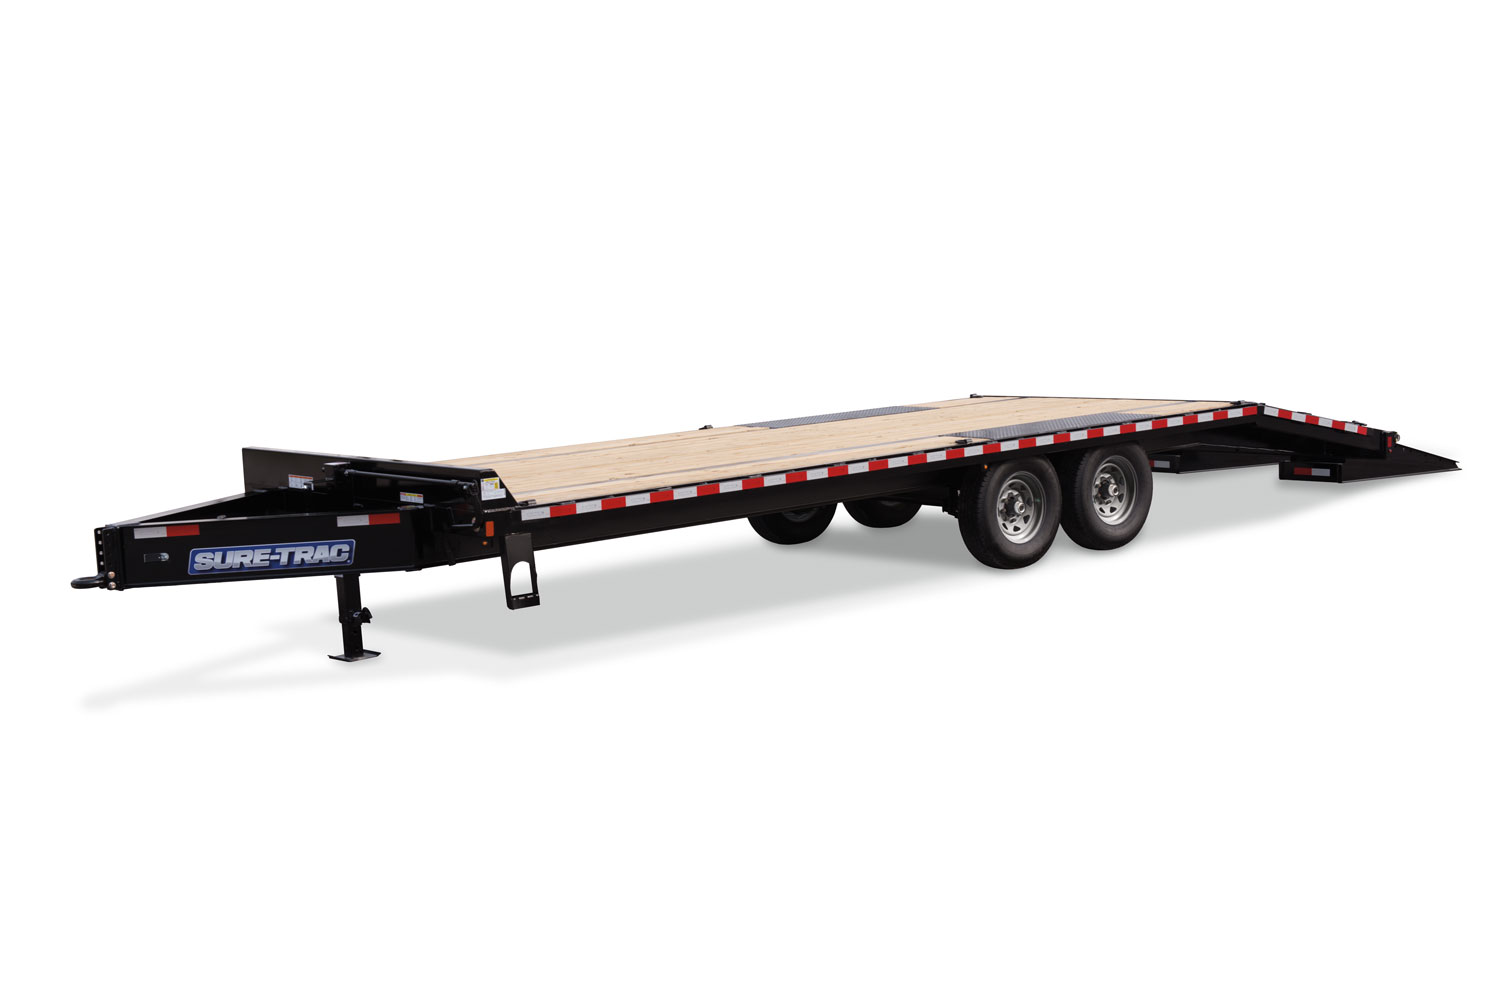 Sure-Trac 8.5 x 20 + 5 22.5K Heavy Duty Low Profile Beavertail Deckover